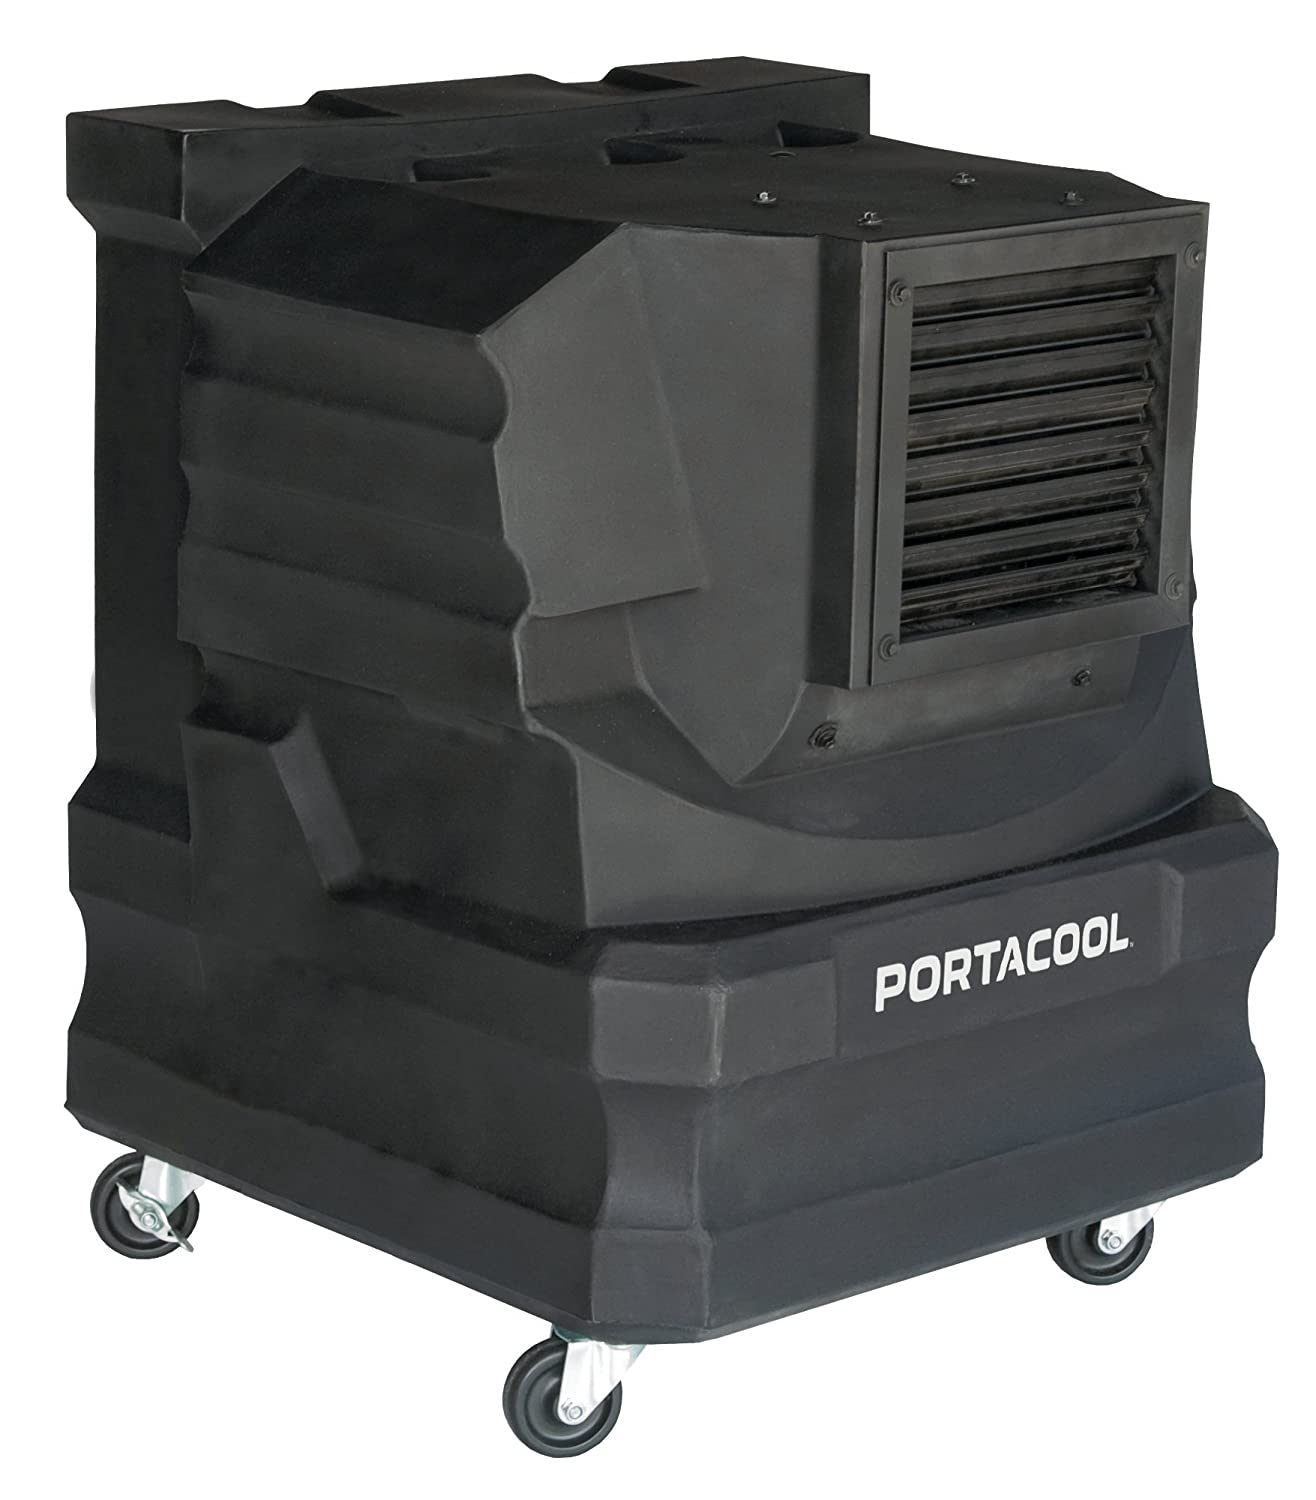 Amazon.com: PortacoolPACCYC02 Cyclone 2000 Portable Evaporative Cooler With  500 Square Foot Cooling Capacity, Black: Home Improvement